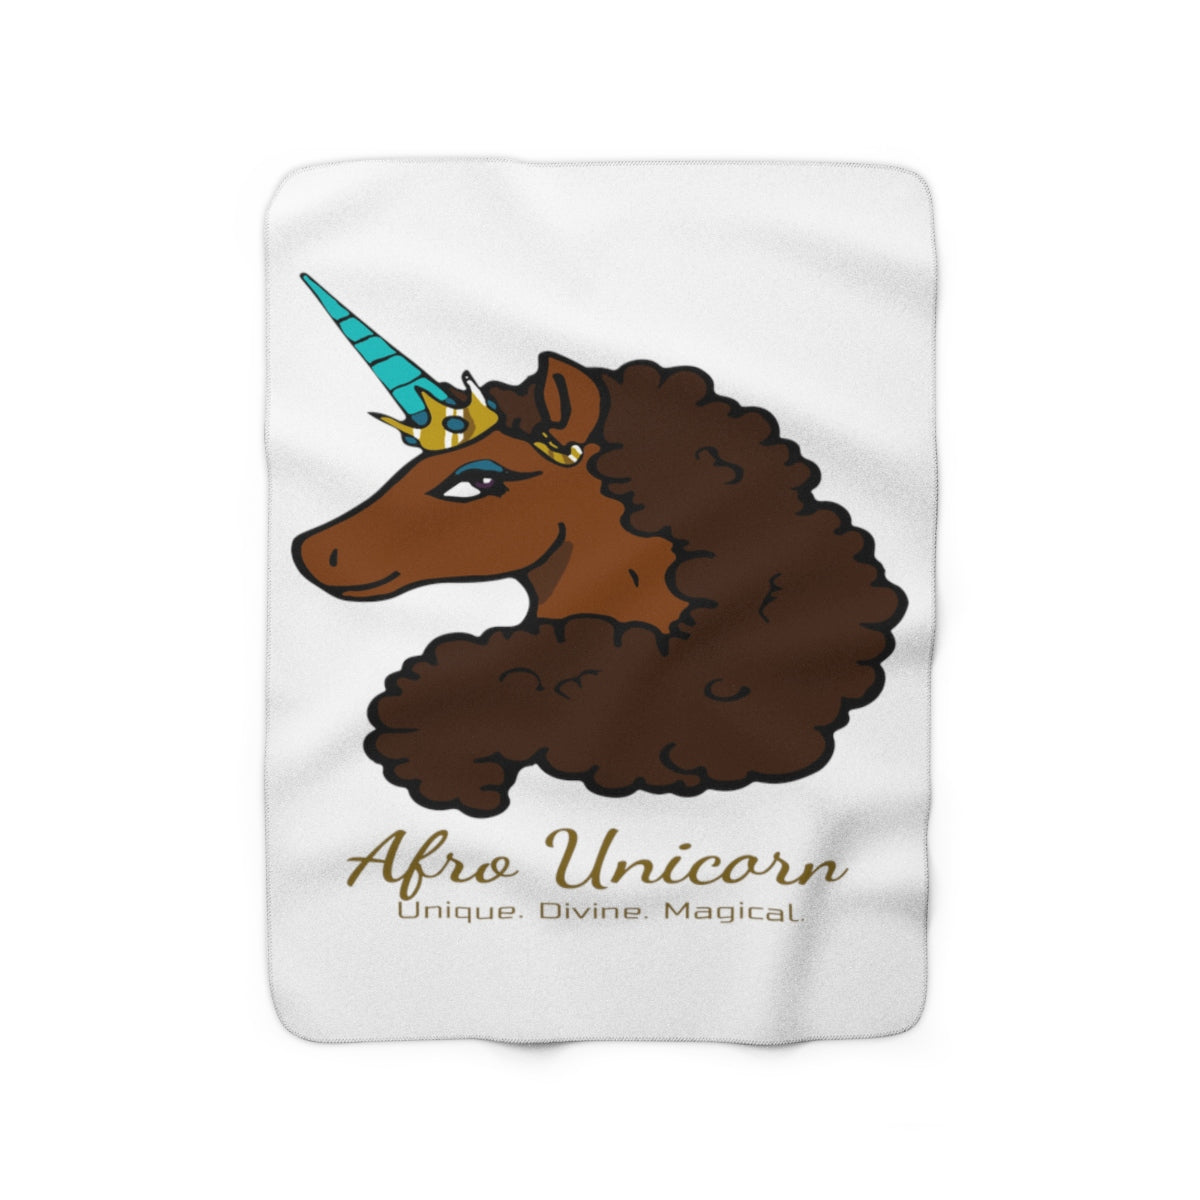 Afro Unicorn Fleece Blanket - Caramel- Afro Unicorn